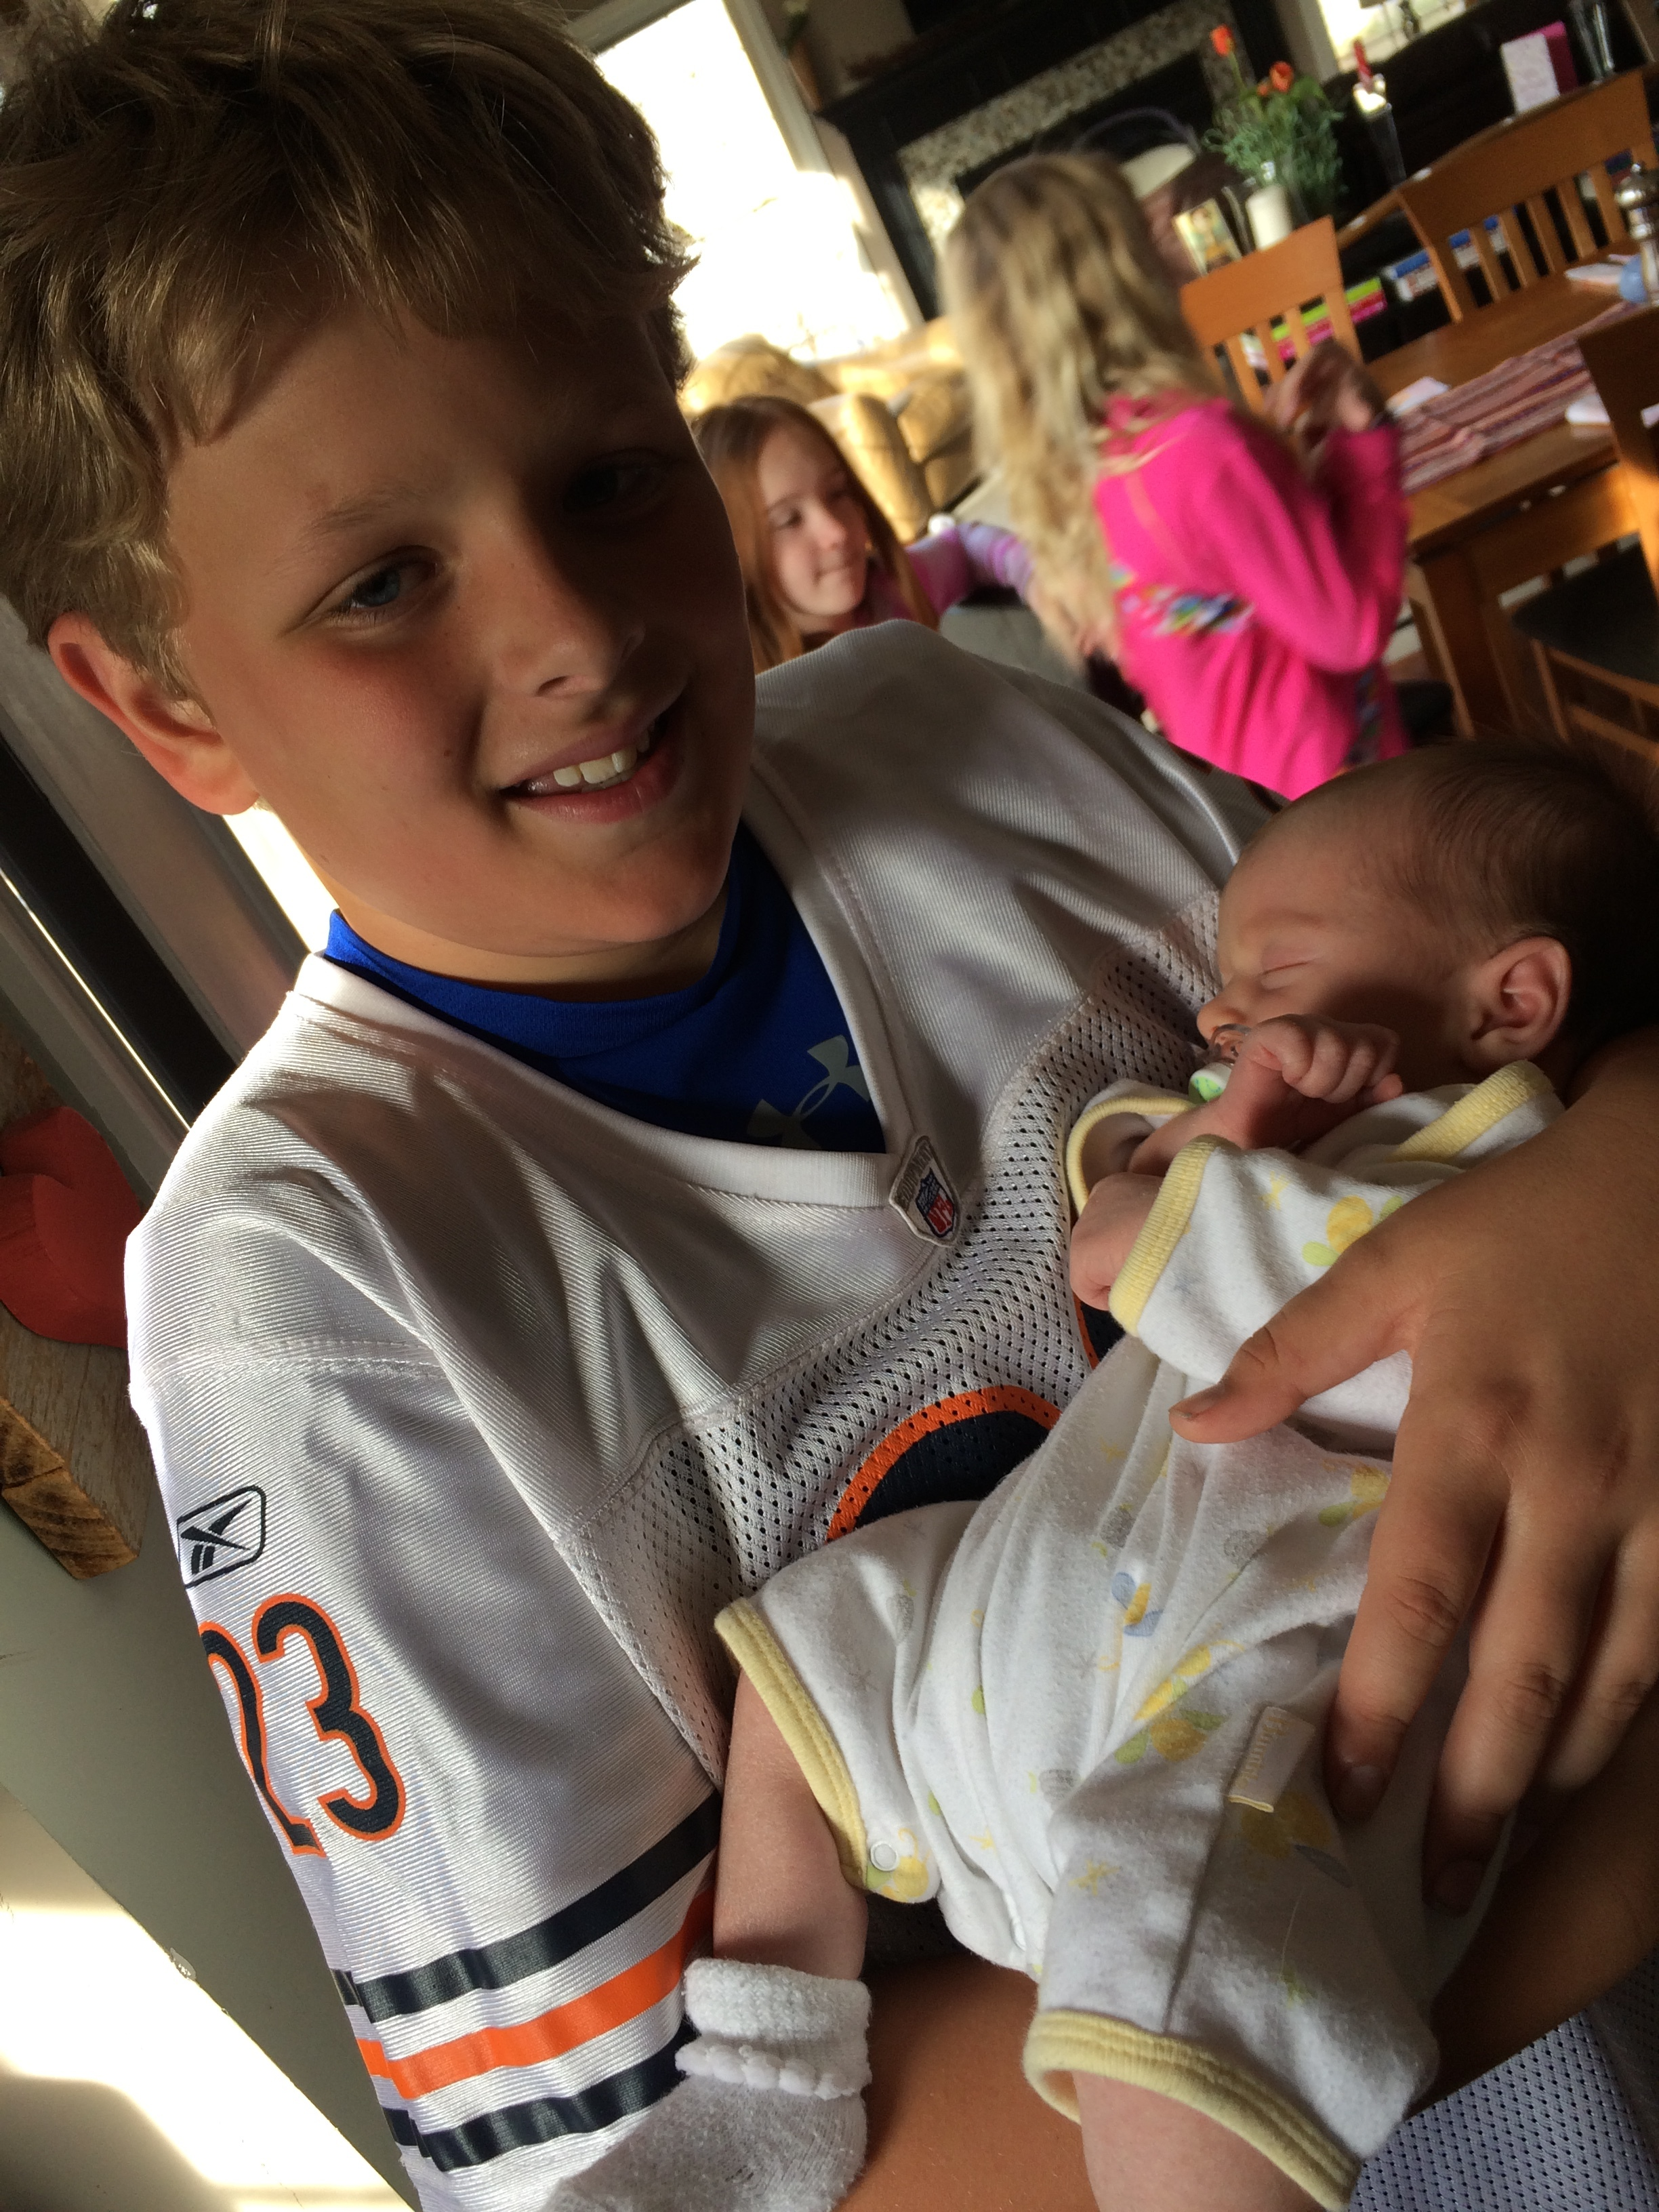 Football jerseys and babies: Sam's model for the modern man.